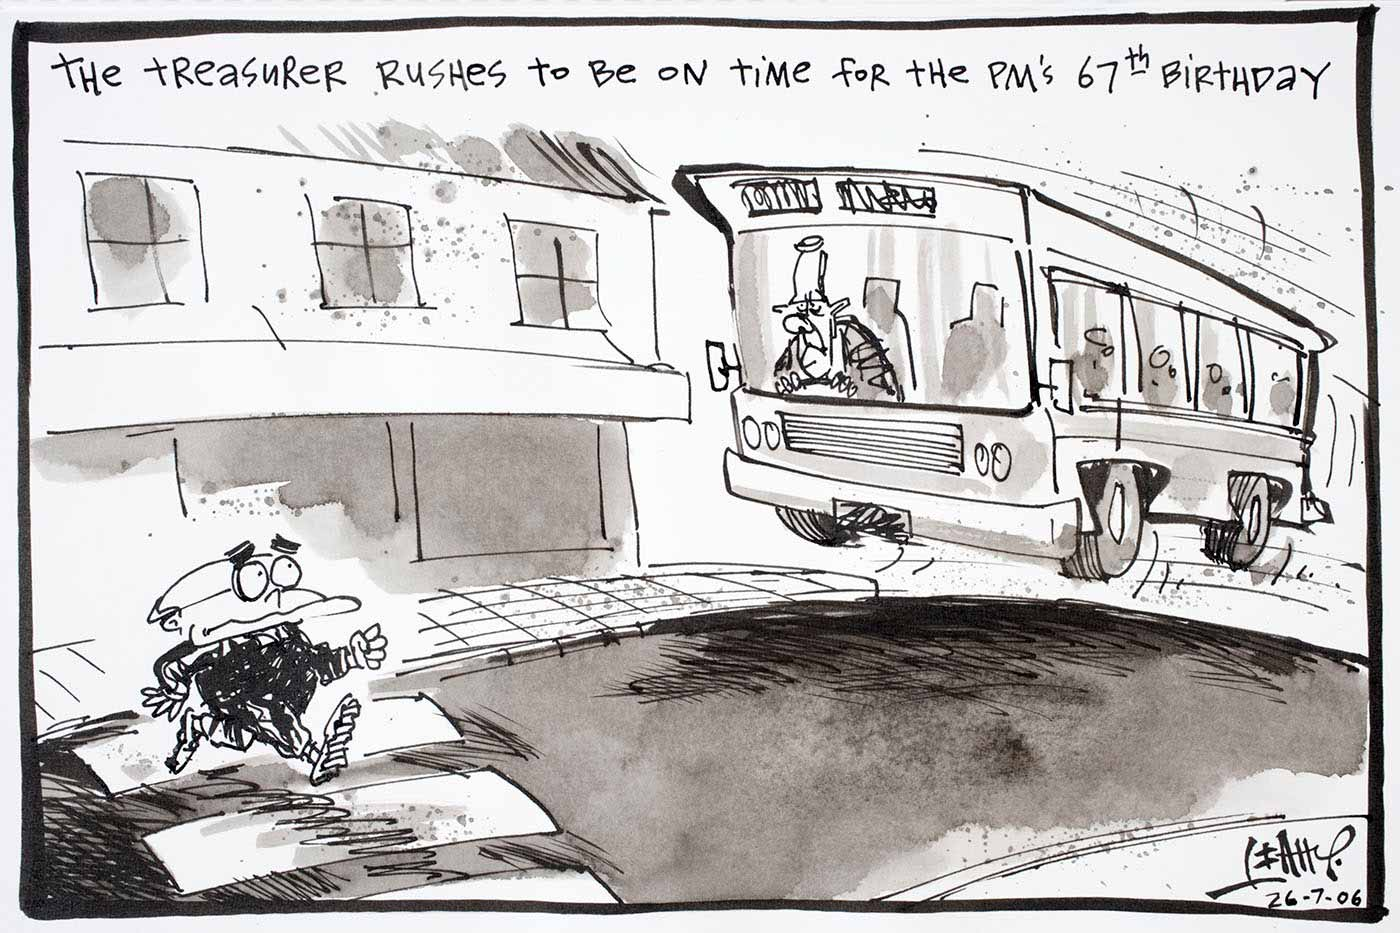 Cartoon of Peter Costello driving a bus very fast trying to be on time for the Prime Minister's 67th birthday. Ahead of him is John Howard walking across a pedestrian crossing - click to view larger image